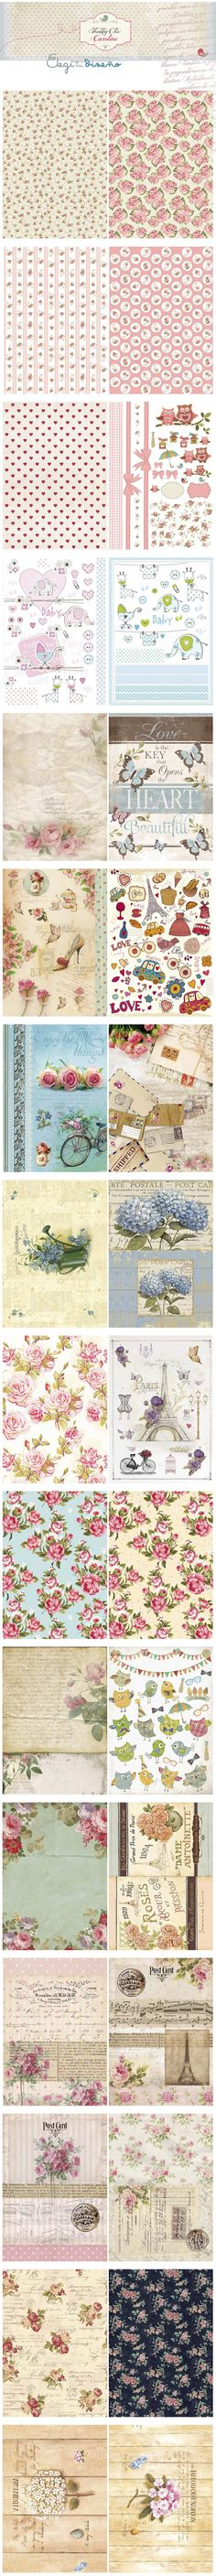 Printables: Floral, butterflies, Paris etc. CLICK on these - they are quite large!